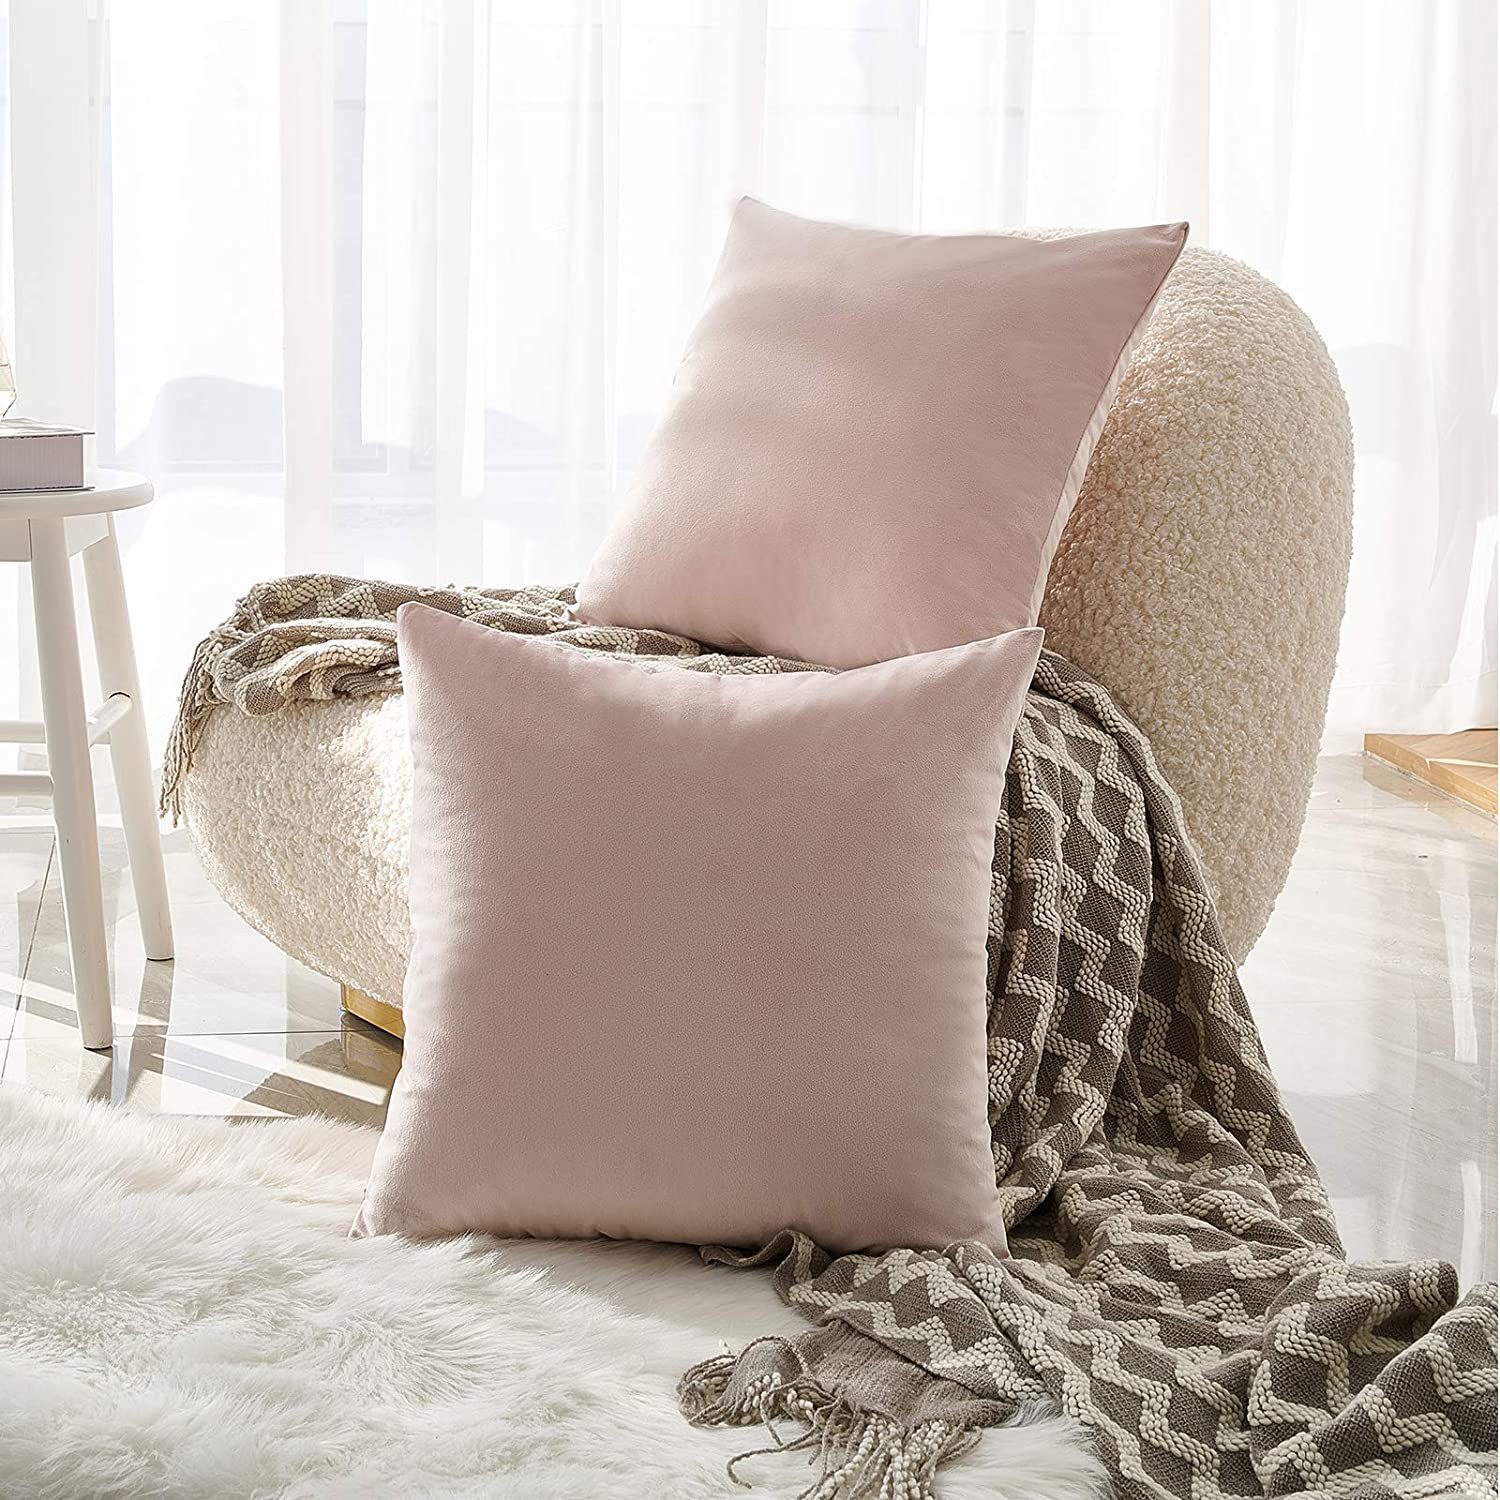 NEERYO Velvet Cushion Covers Solid Free Shipping New Decorative Square Color Soft Limited time sale